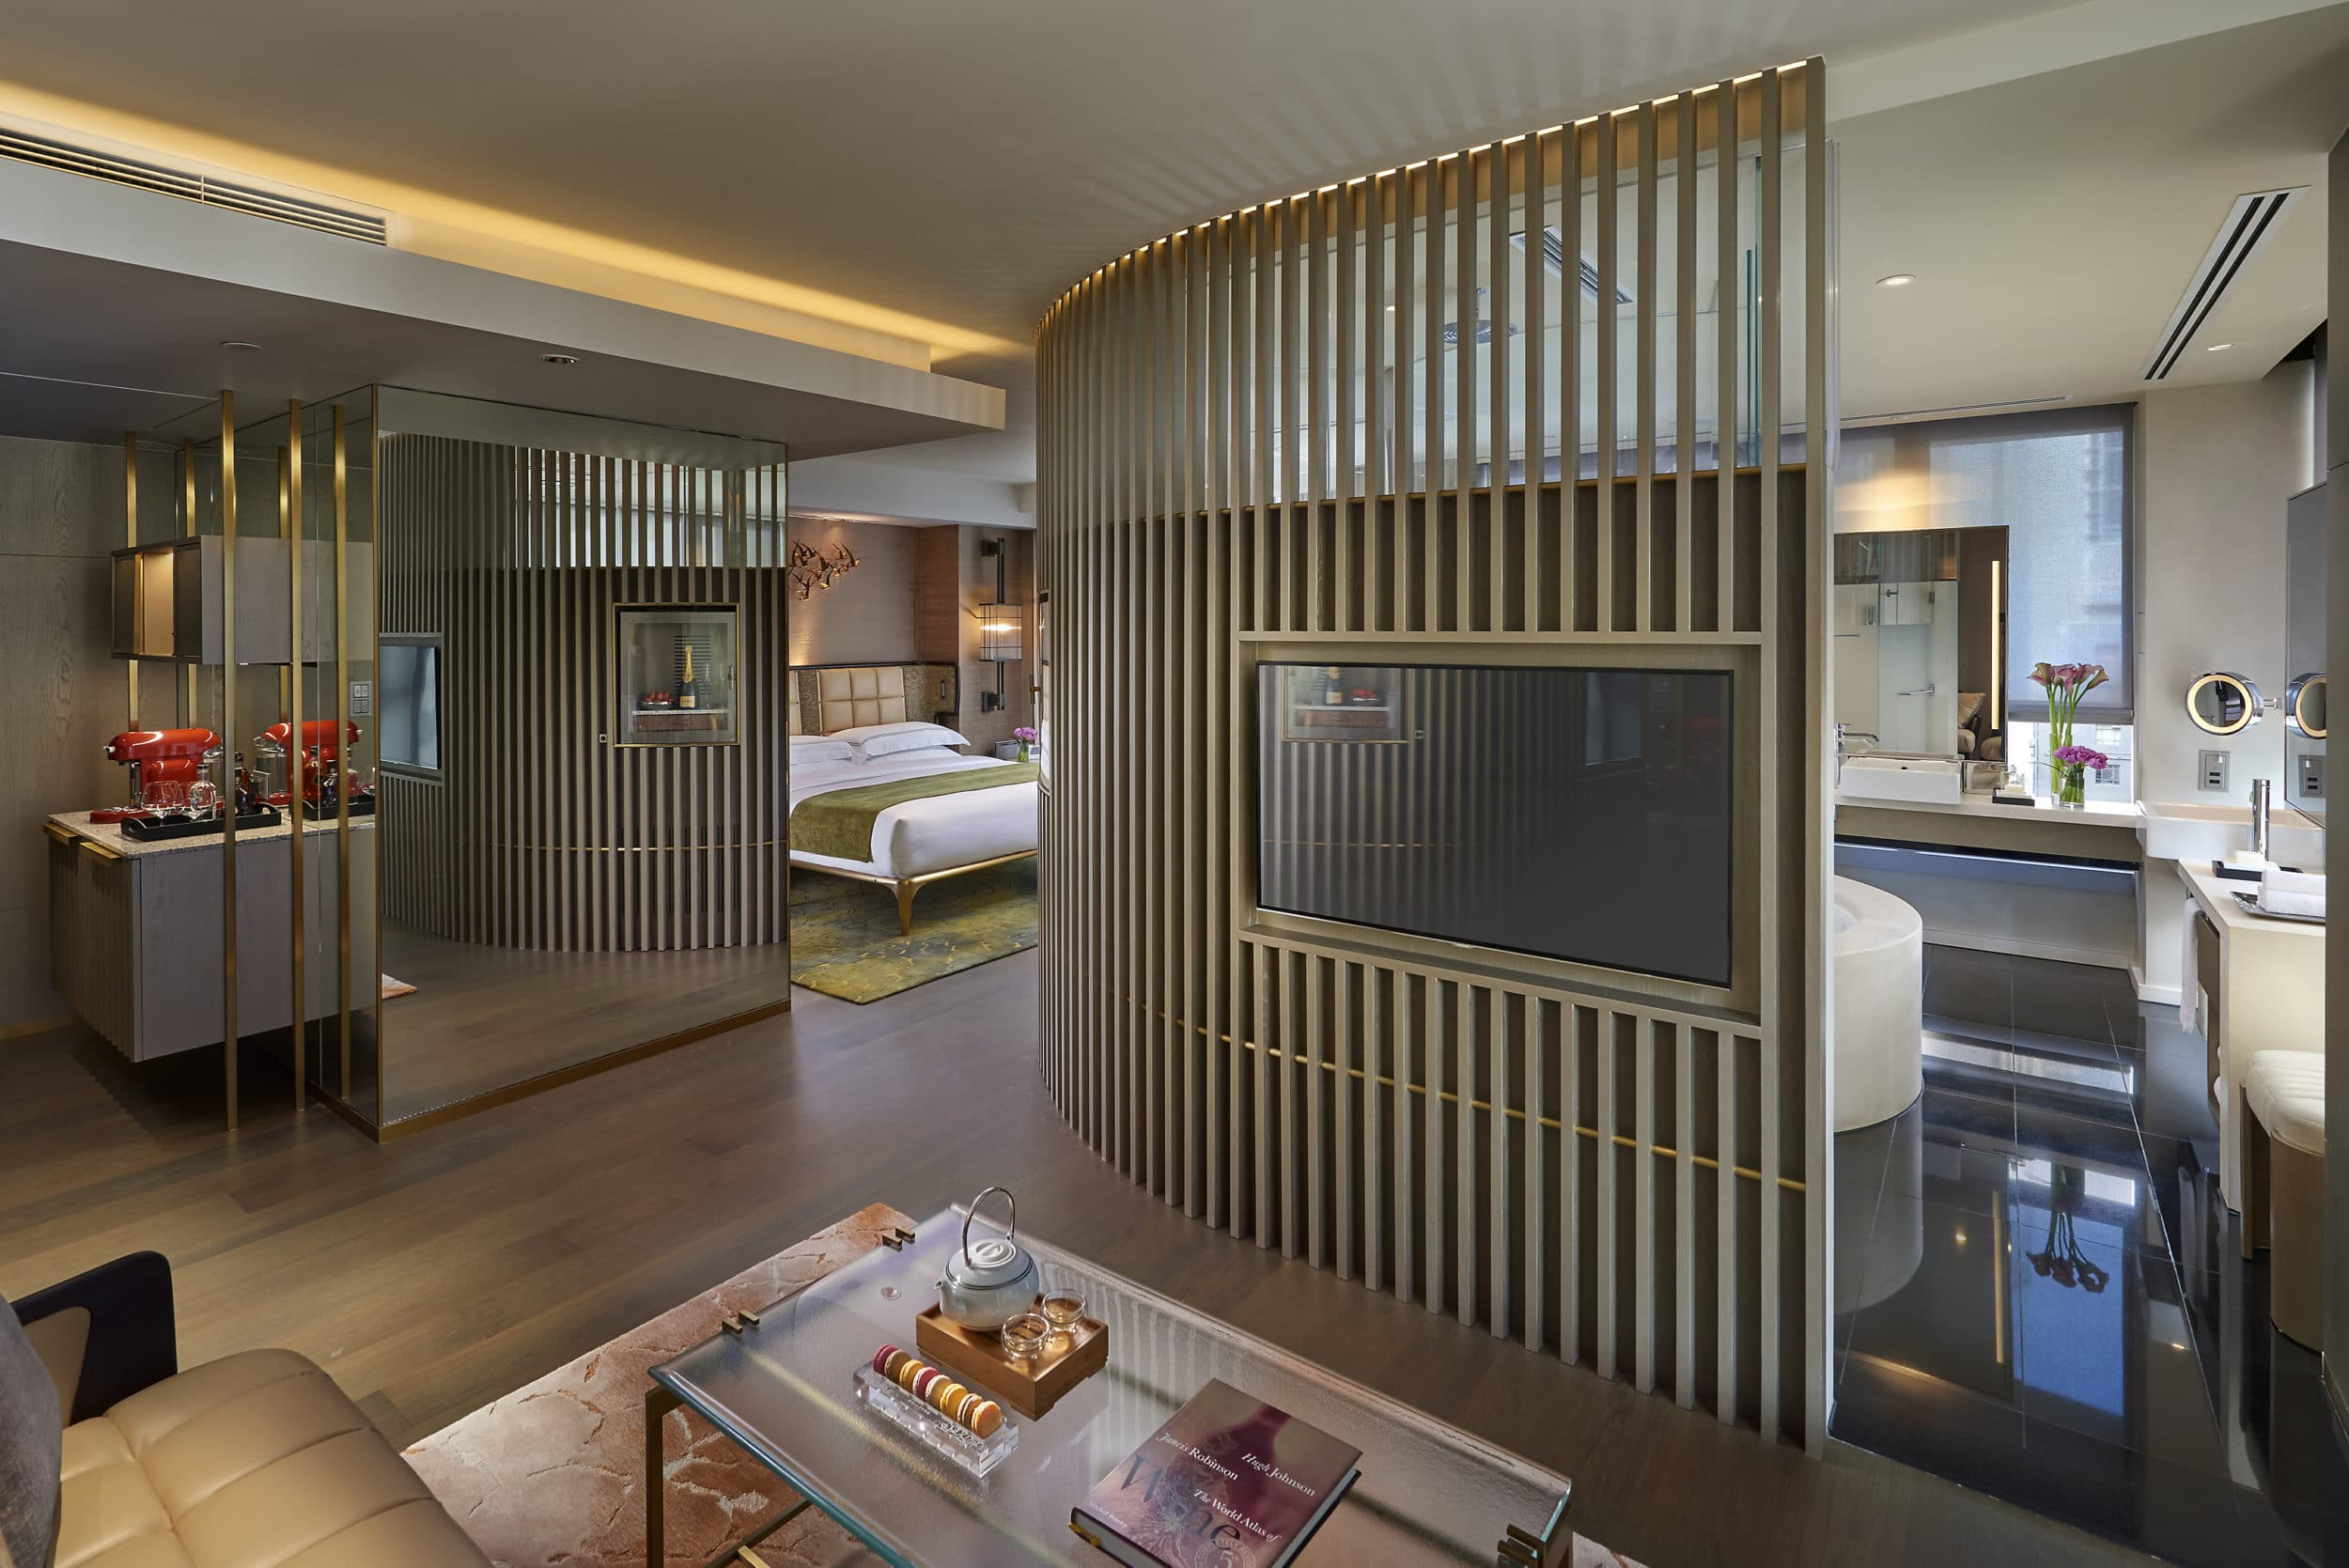 Best Hong Kong hotels: The Landmark Mandarin Oriental